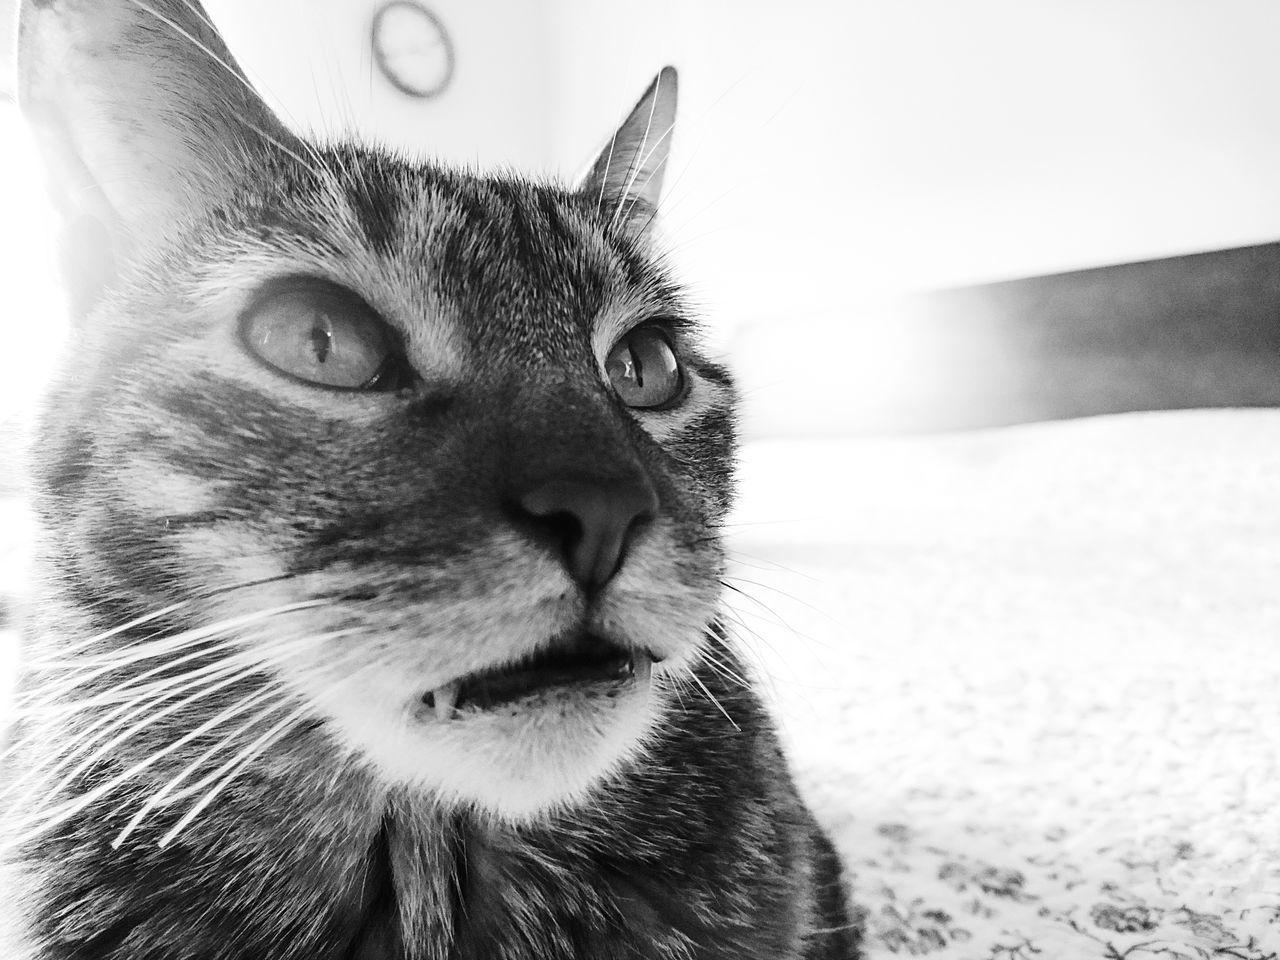 domestic cat, one animal, animal themes, pets, feline, mammal, domestic animals, whisker, no people, close-up, portrait, day, outdoors, nature